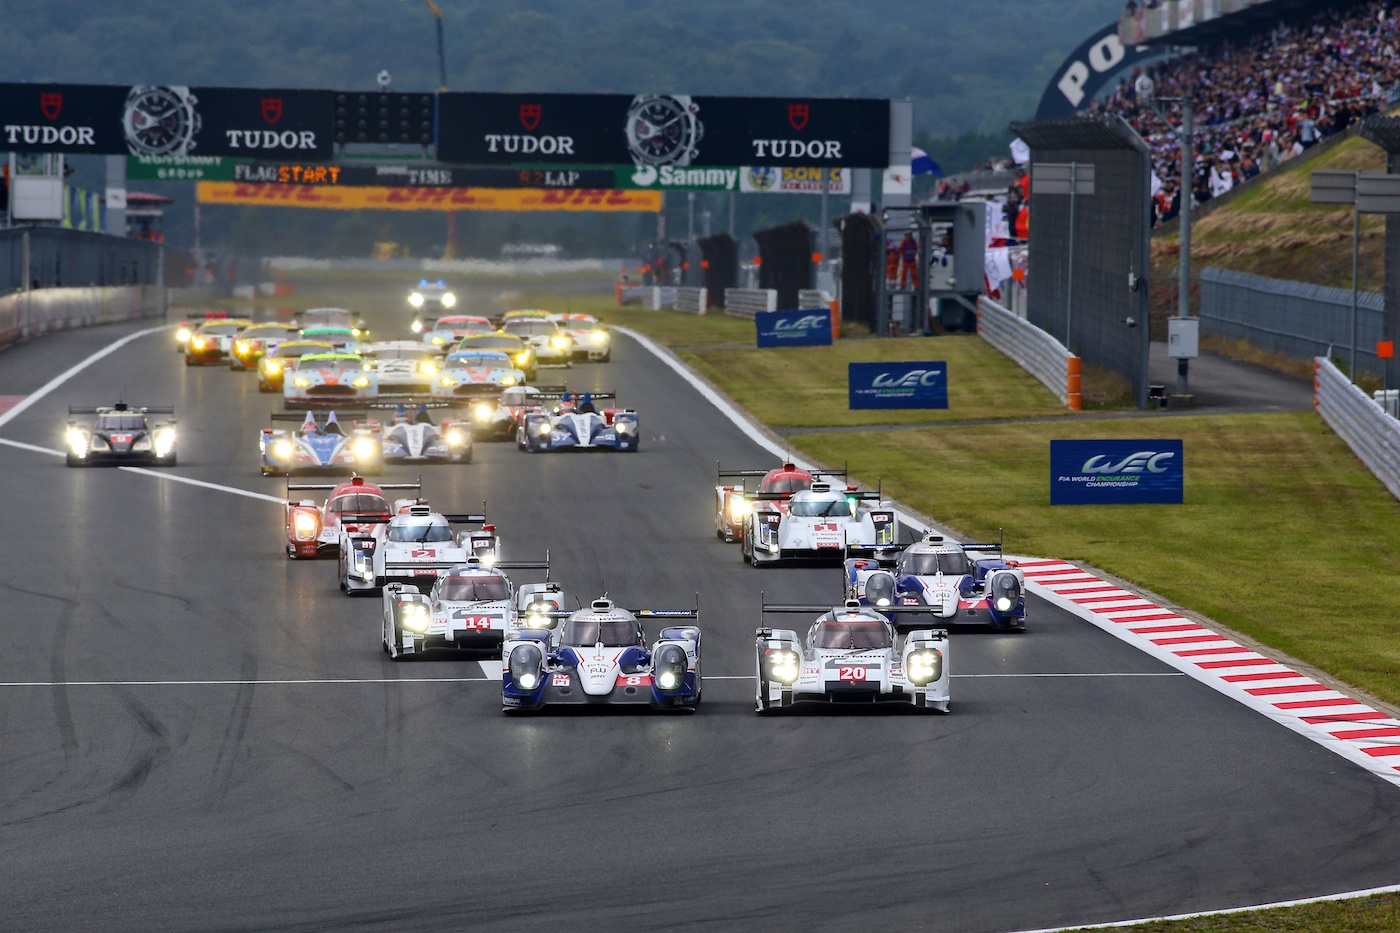 FIA WEC live on FOX Sports